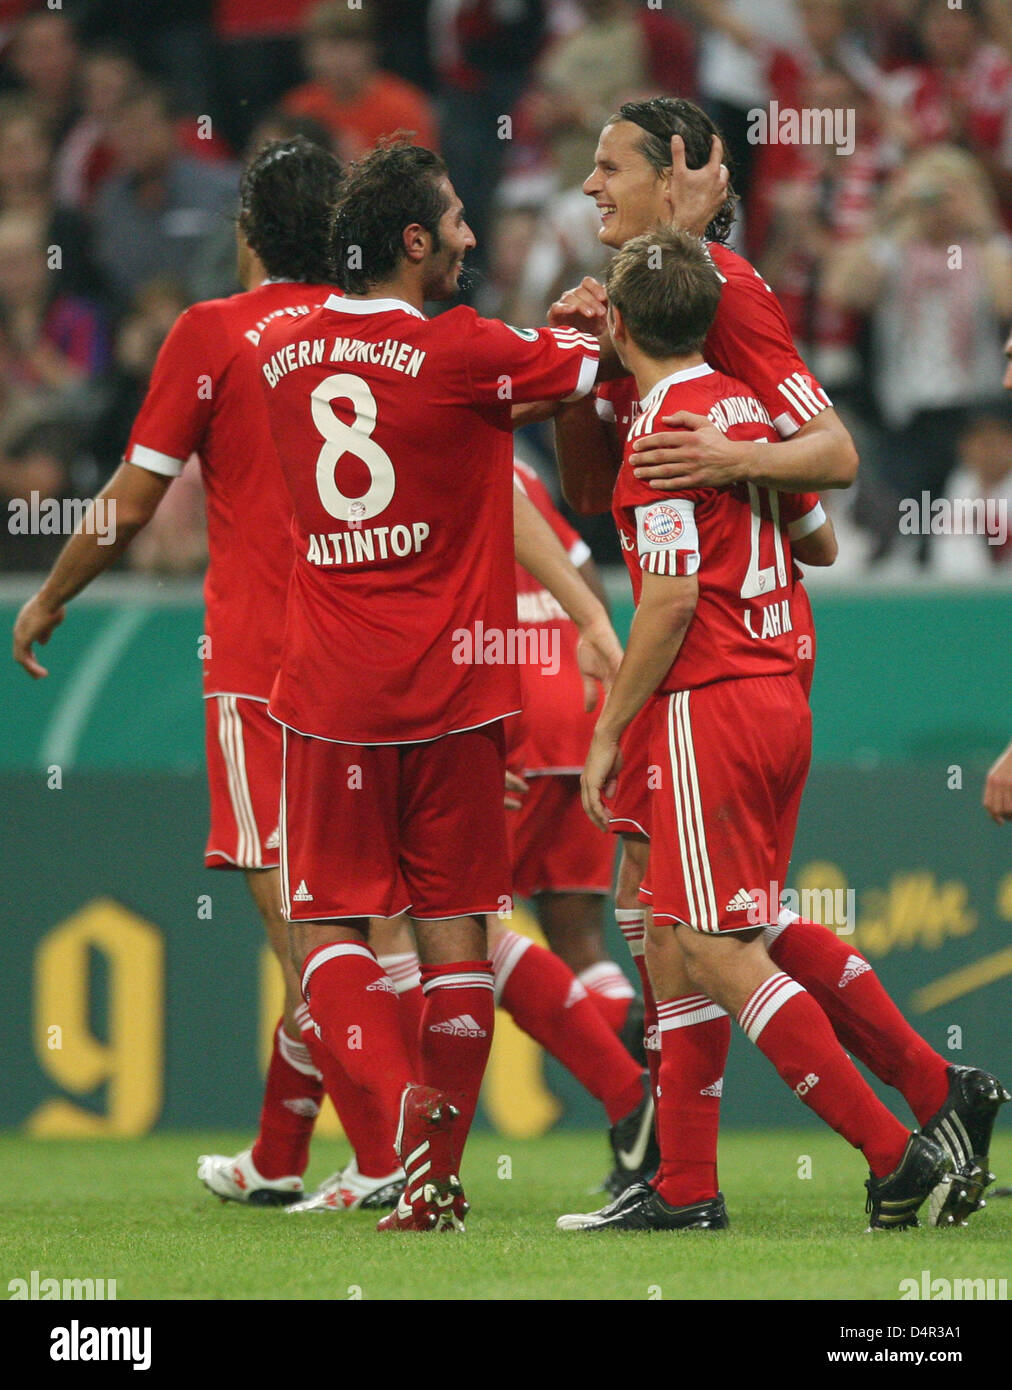 Munich?s Daniel van Buyten (back R) cheers about his 3-0 score with teammates during the German DFB Cup second round - Stock Image